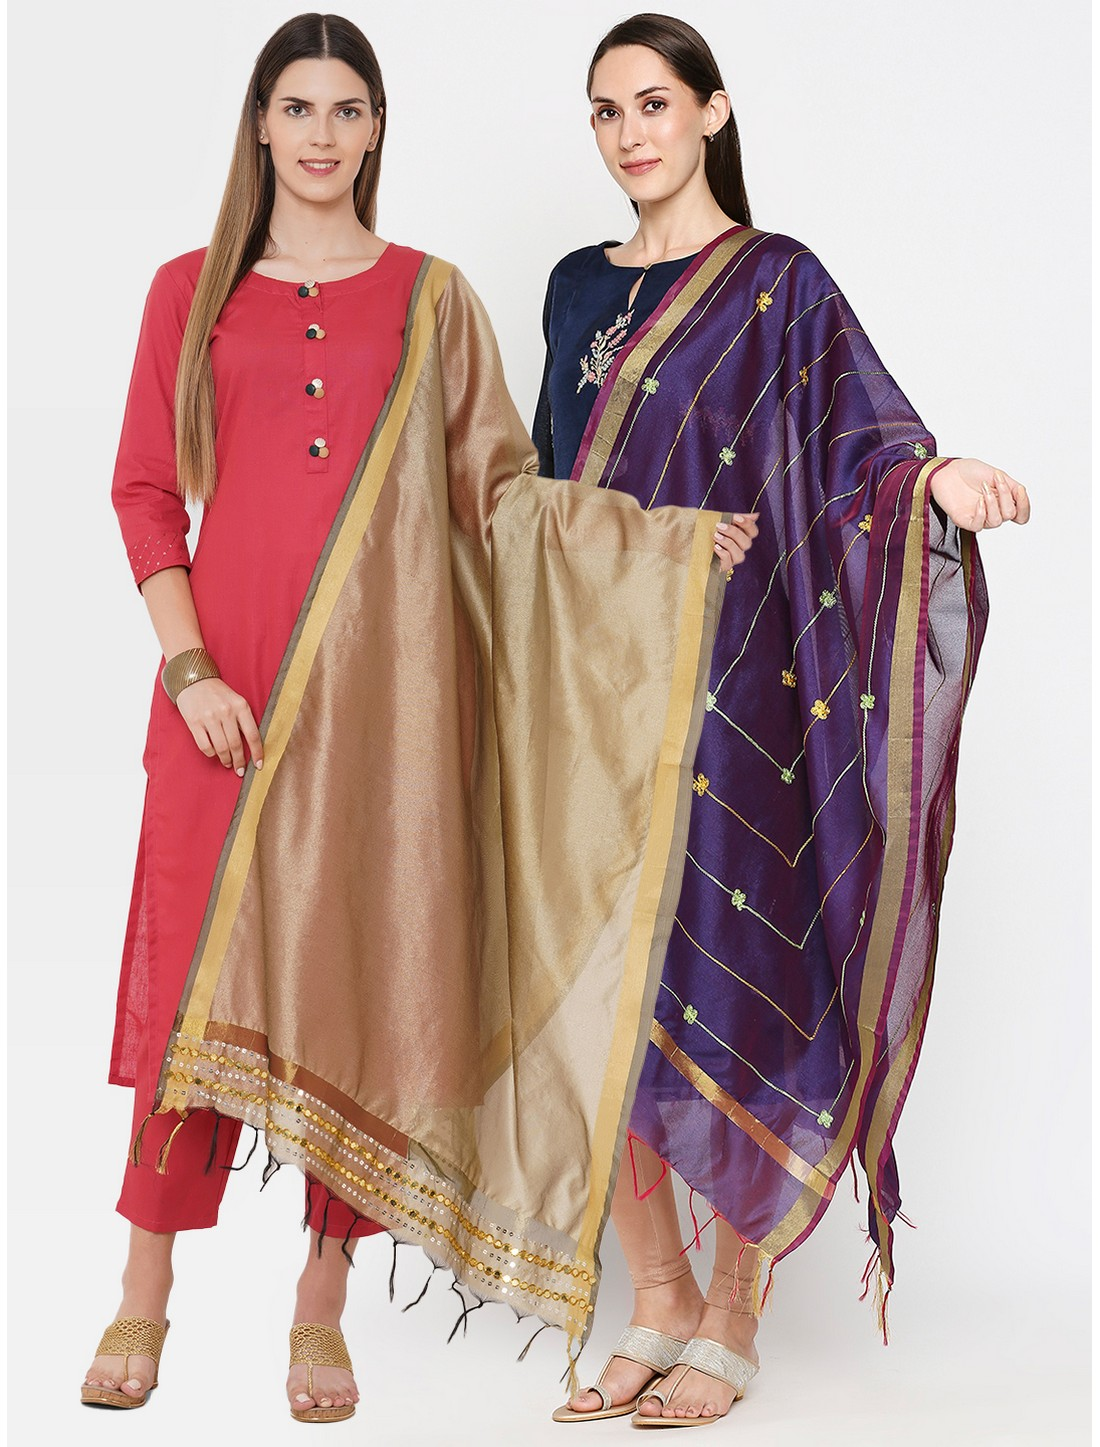 Get Wrapped | Get Wrapped Polyester Gold Border Dupatta with Embroidery for Women - Combo Pack of 2